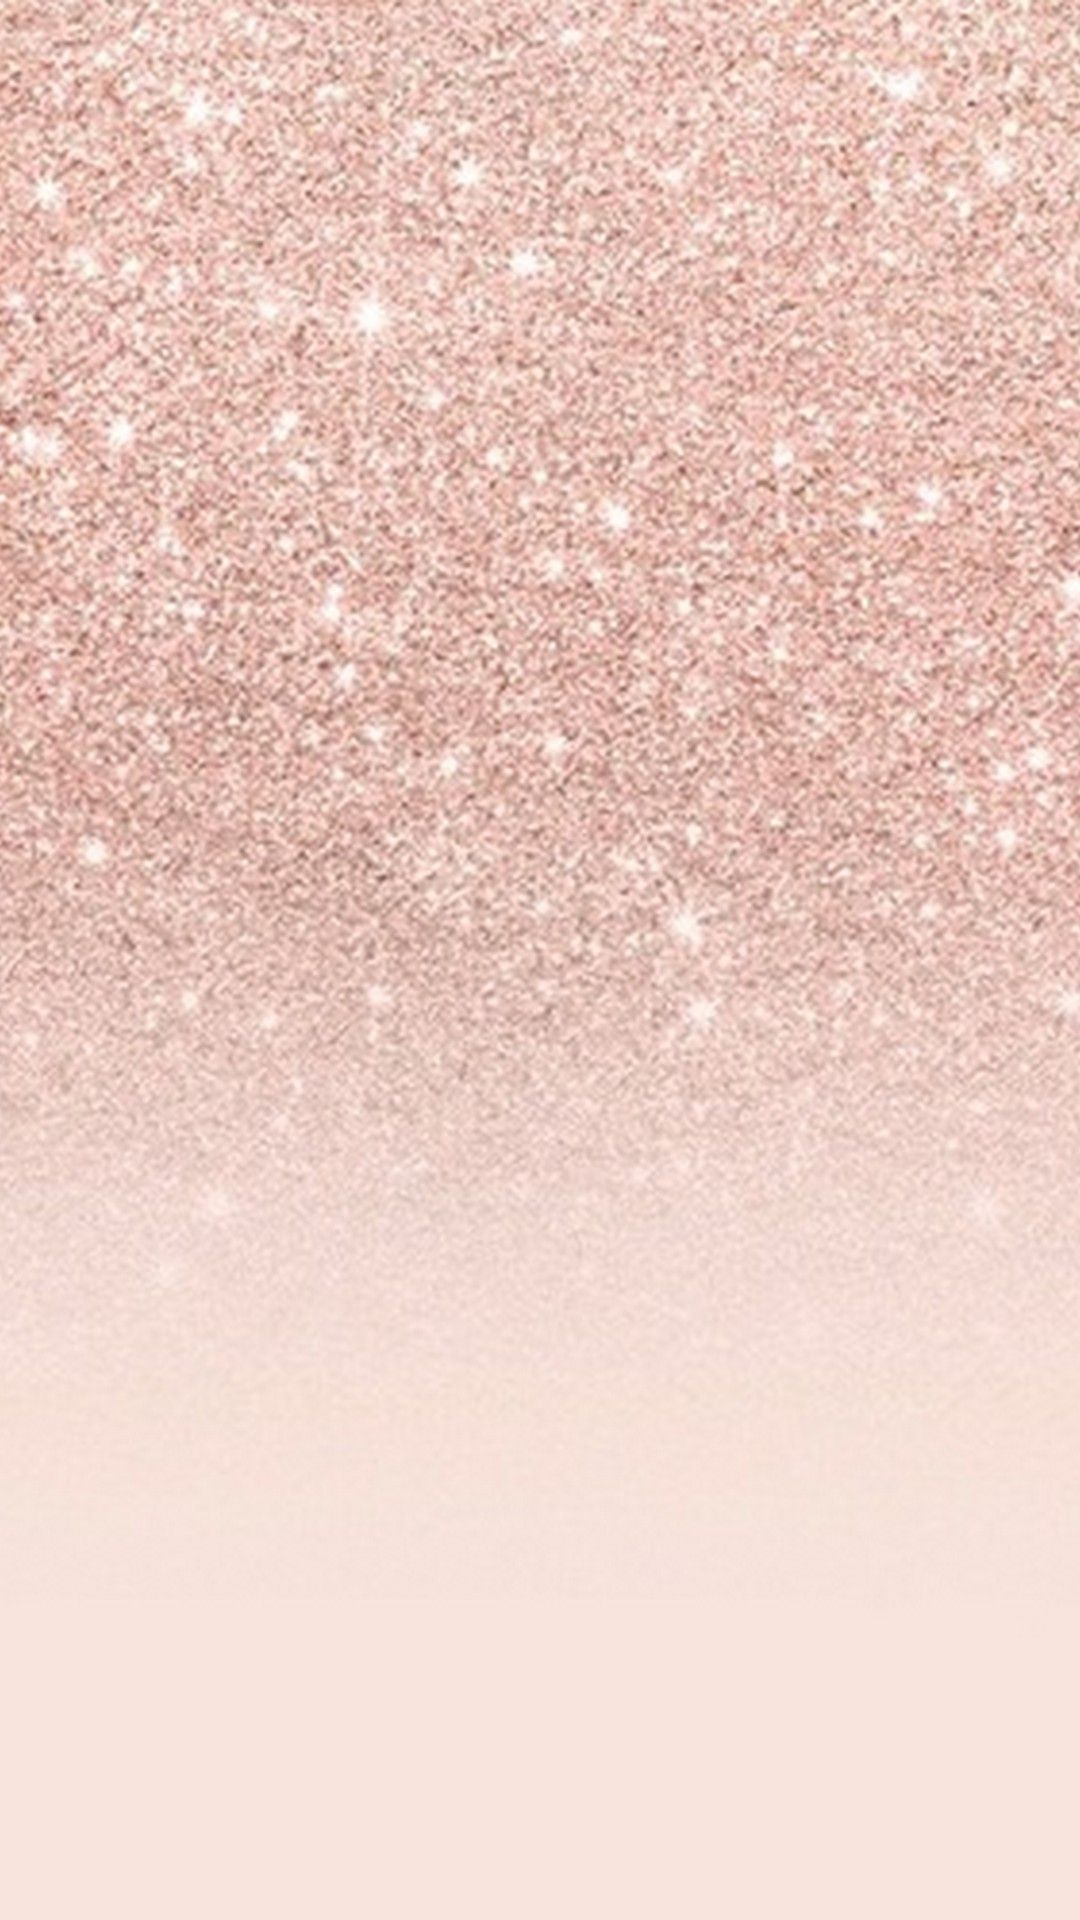 Wallpaper rose gold glitter android is high definition - Iphone wallpaper rose gold ...